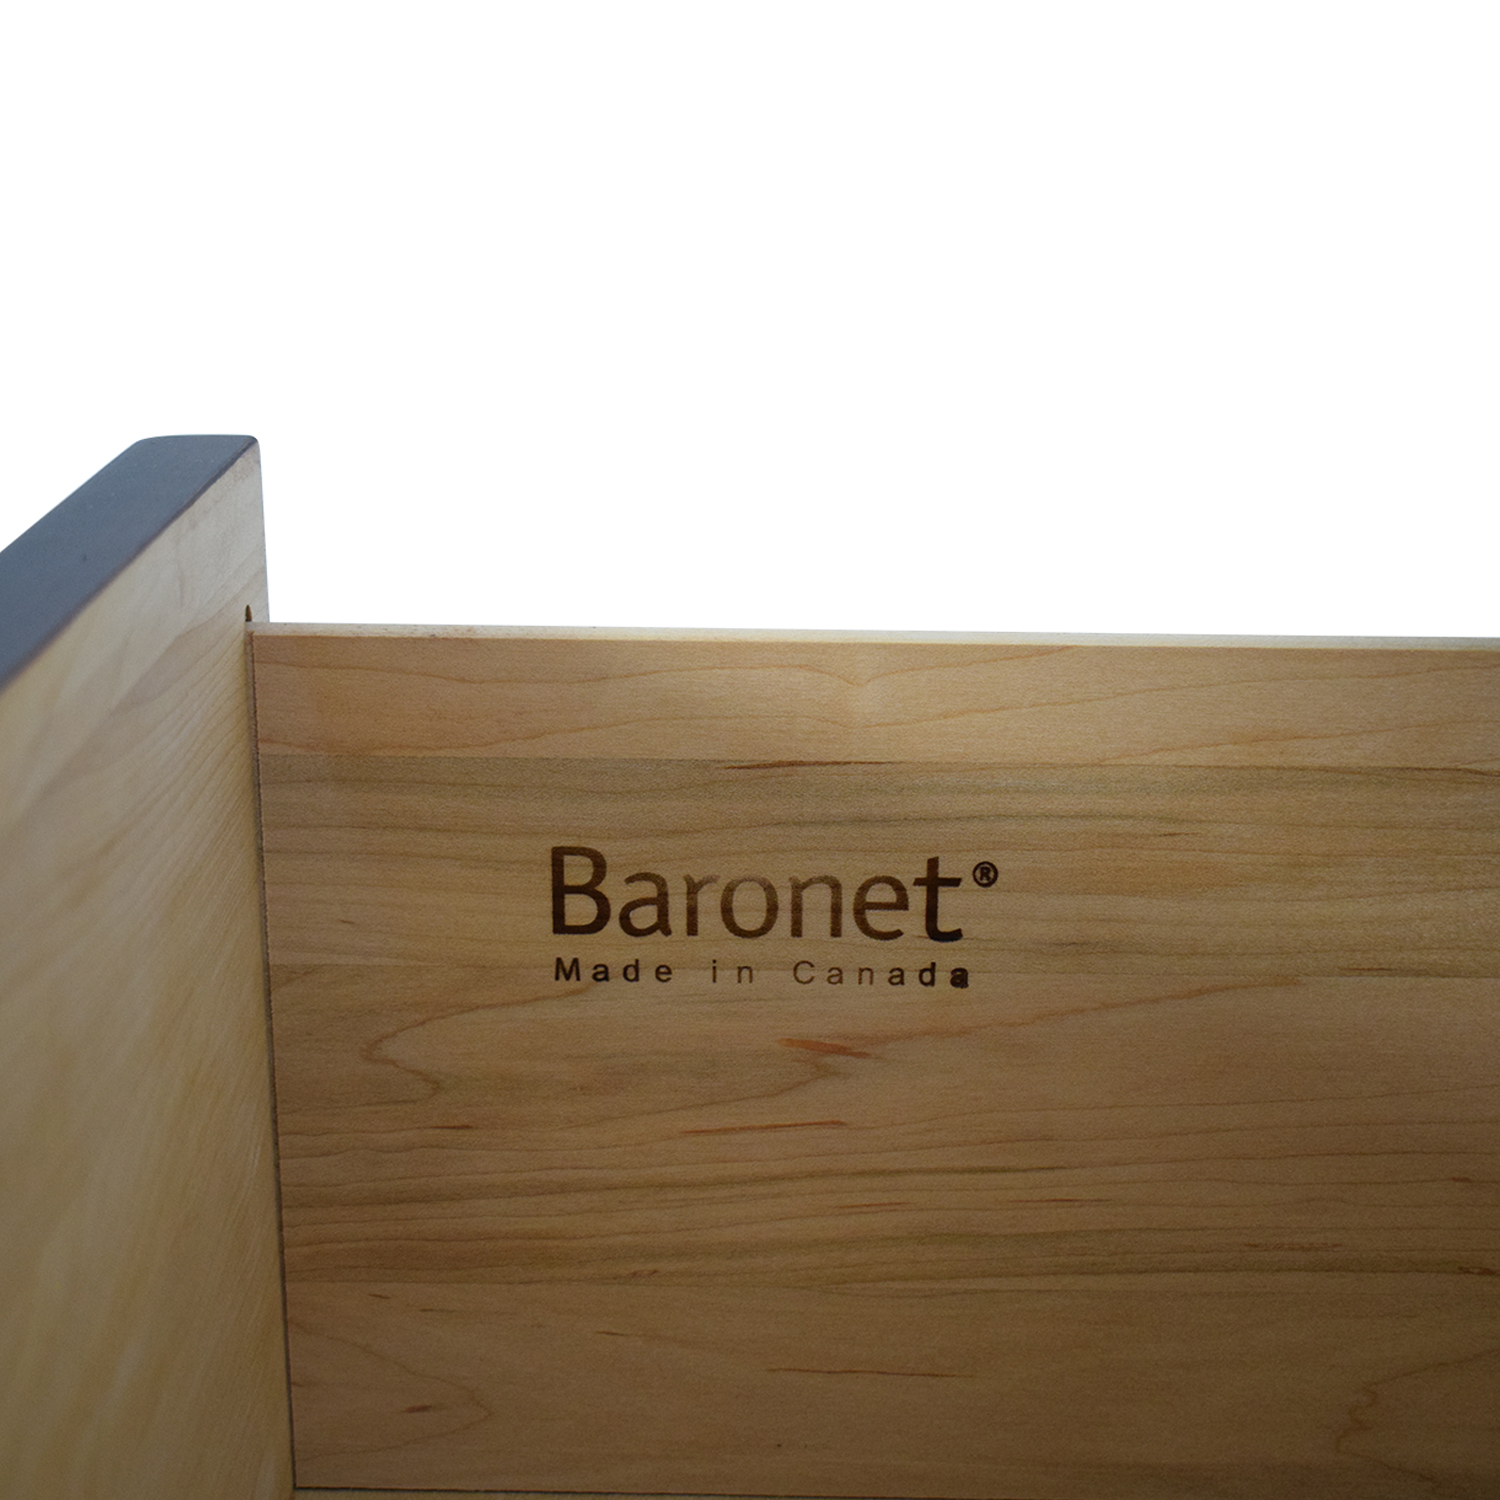 Crate & Barrel Crate & Barrel Baronet Six-Drawer Chest for sale